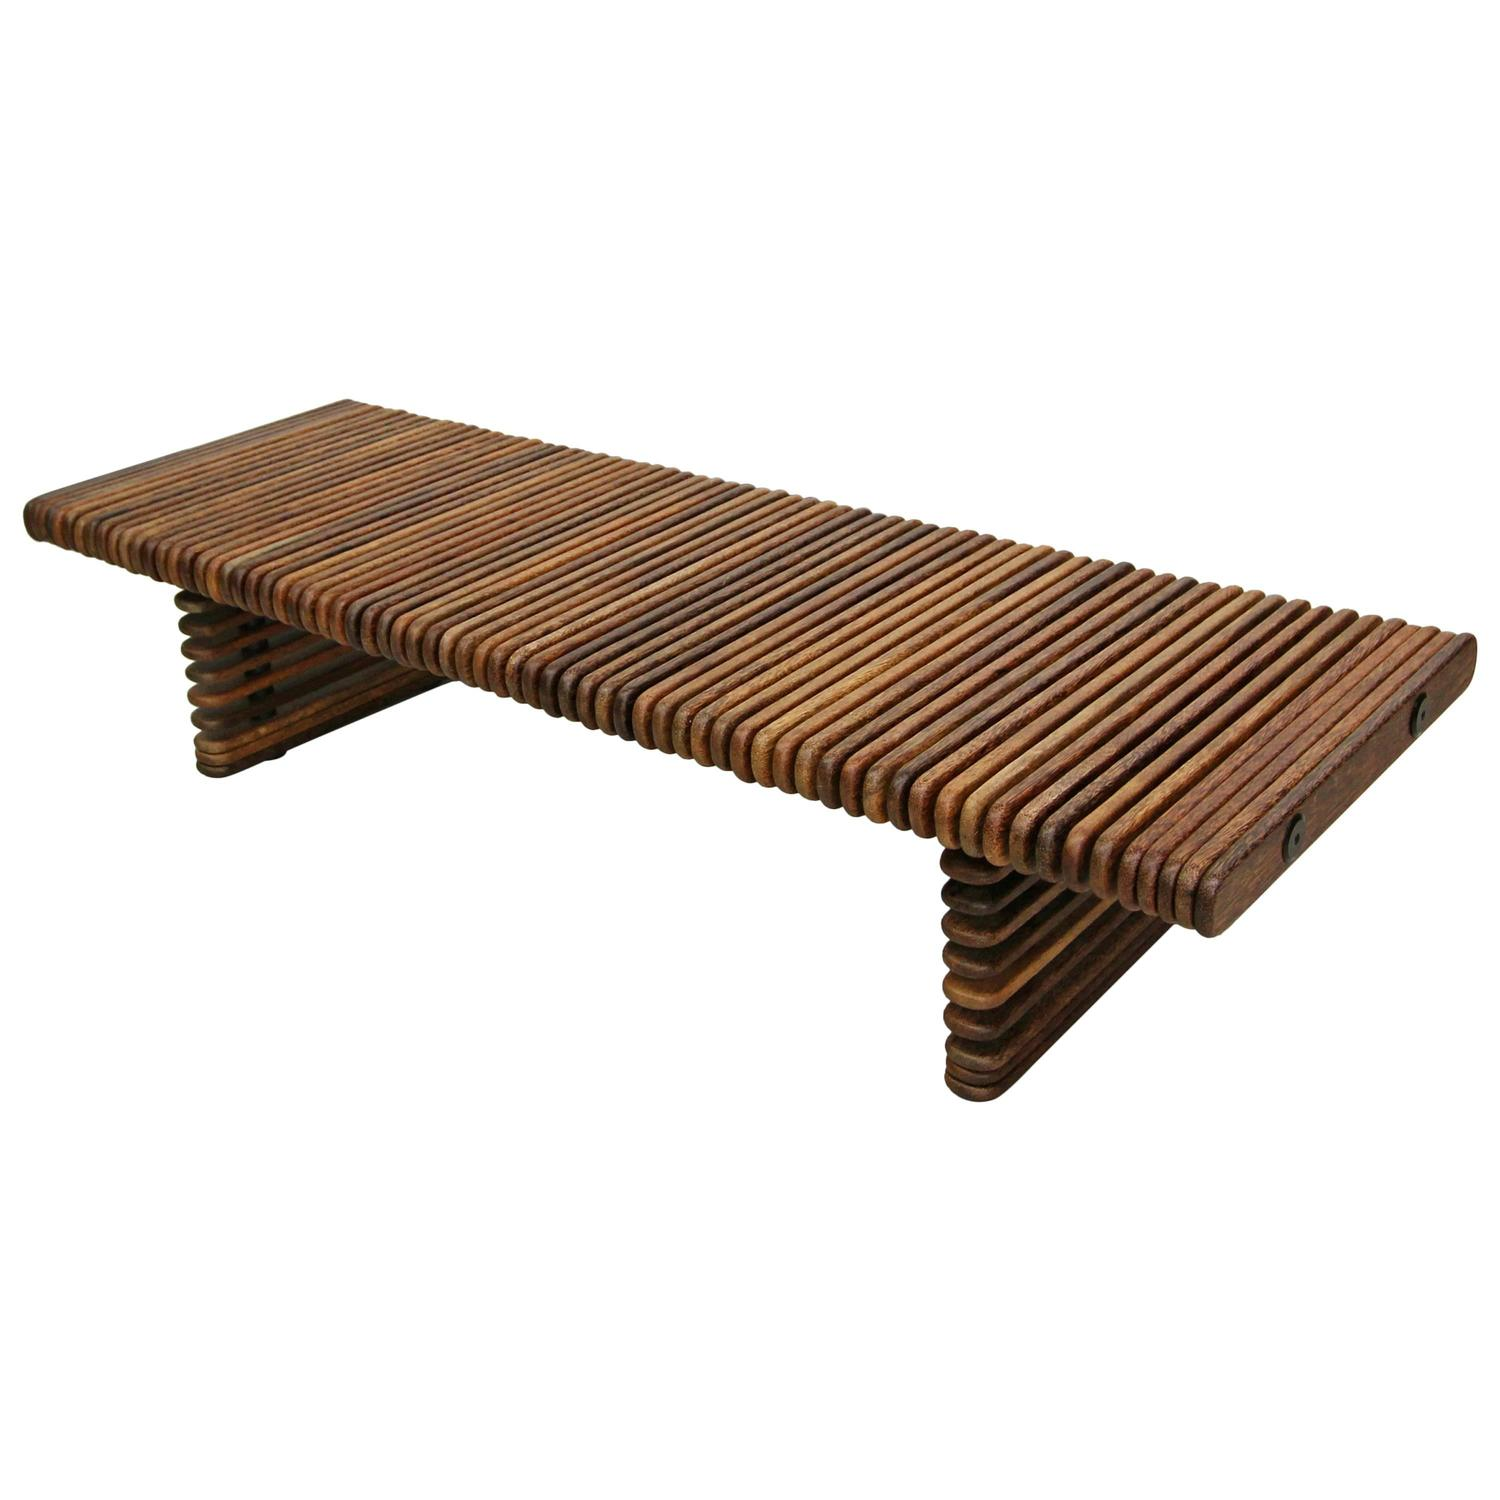 Green Palmwood Isle D 39 Palm Slatted Bench Coffee Table At 1stdibs